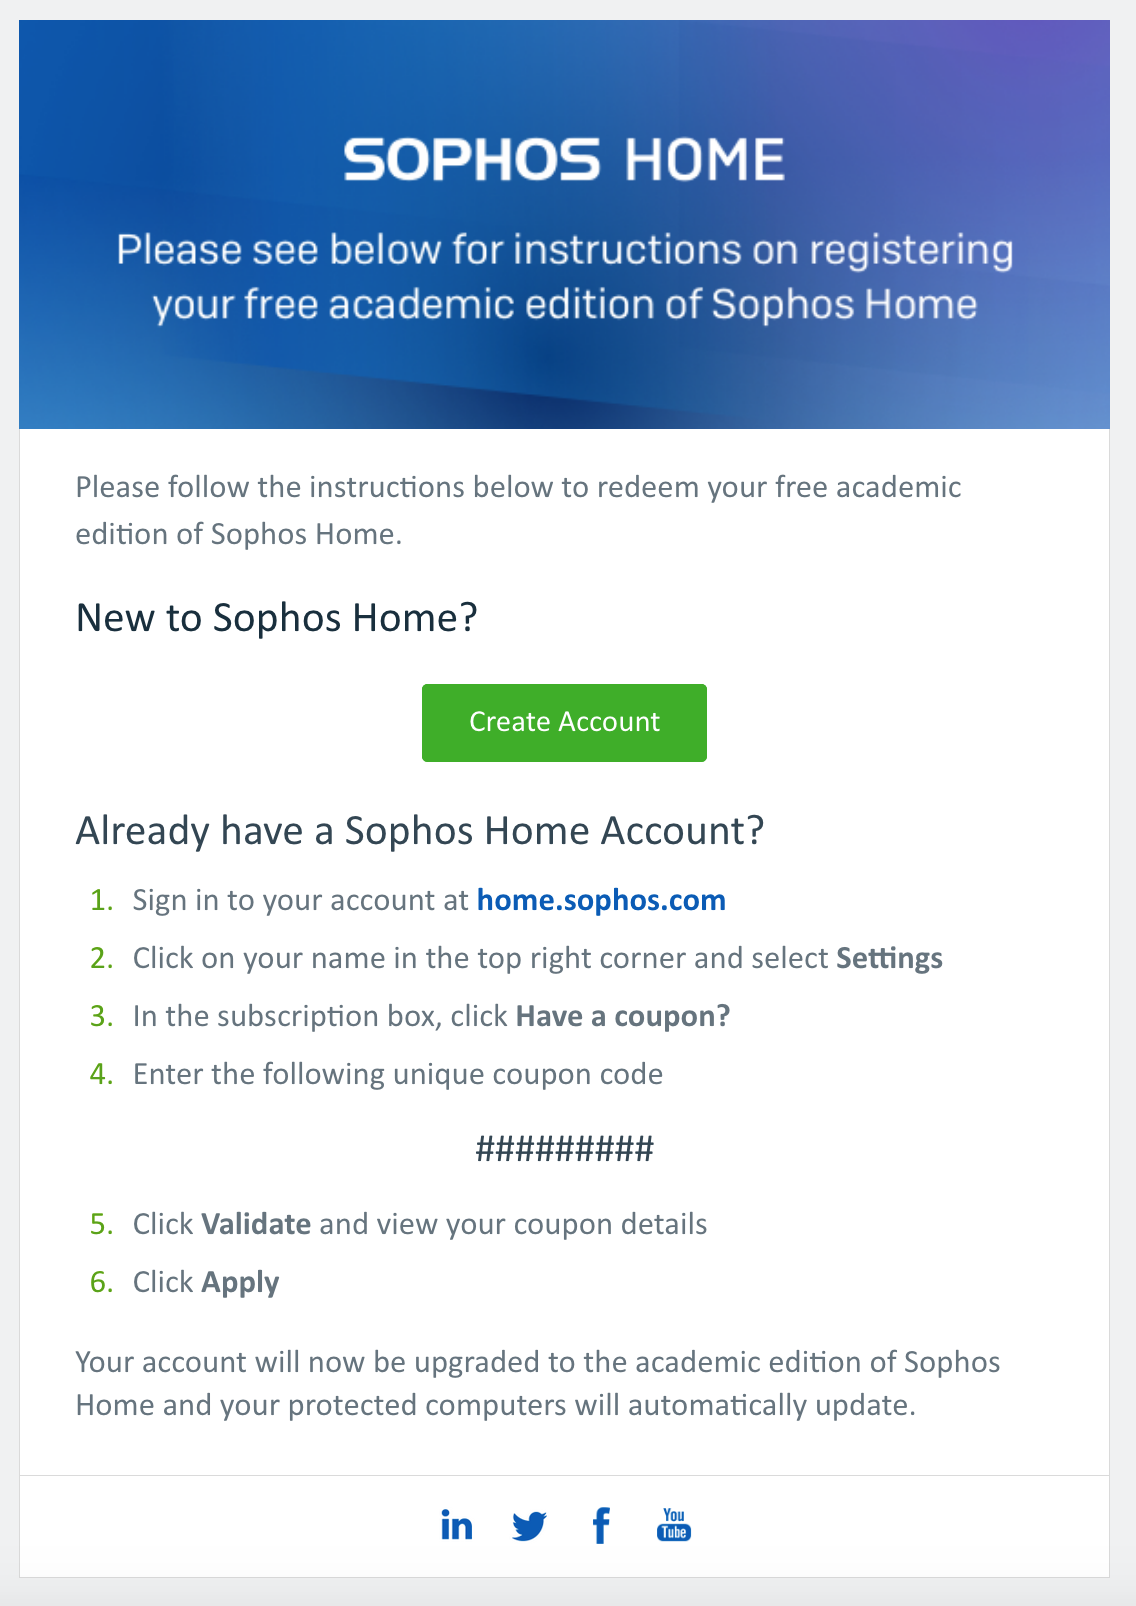 Sophos email with create account button